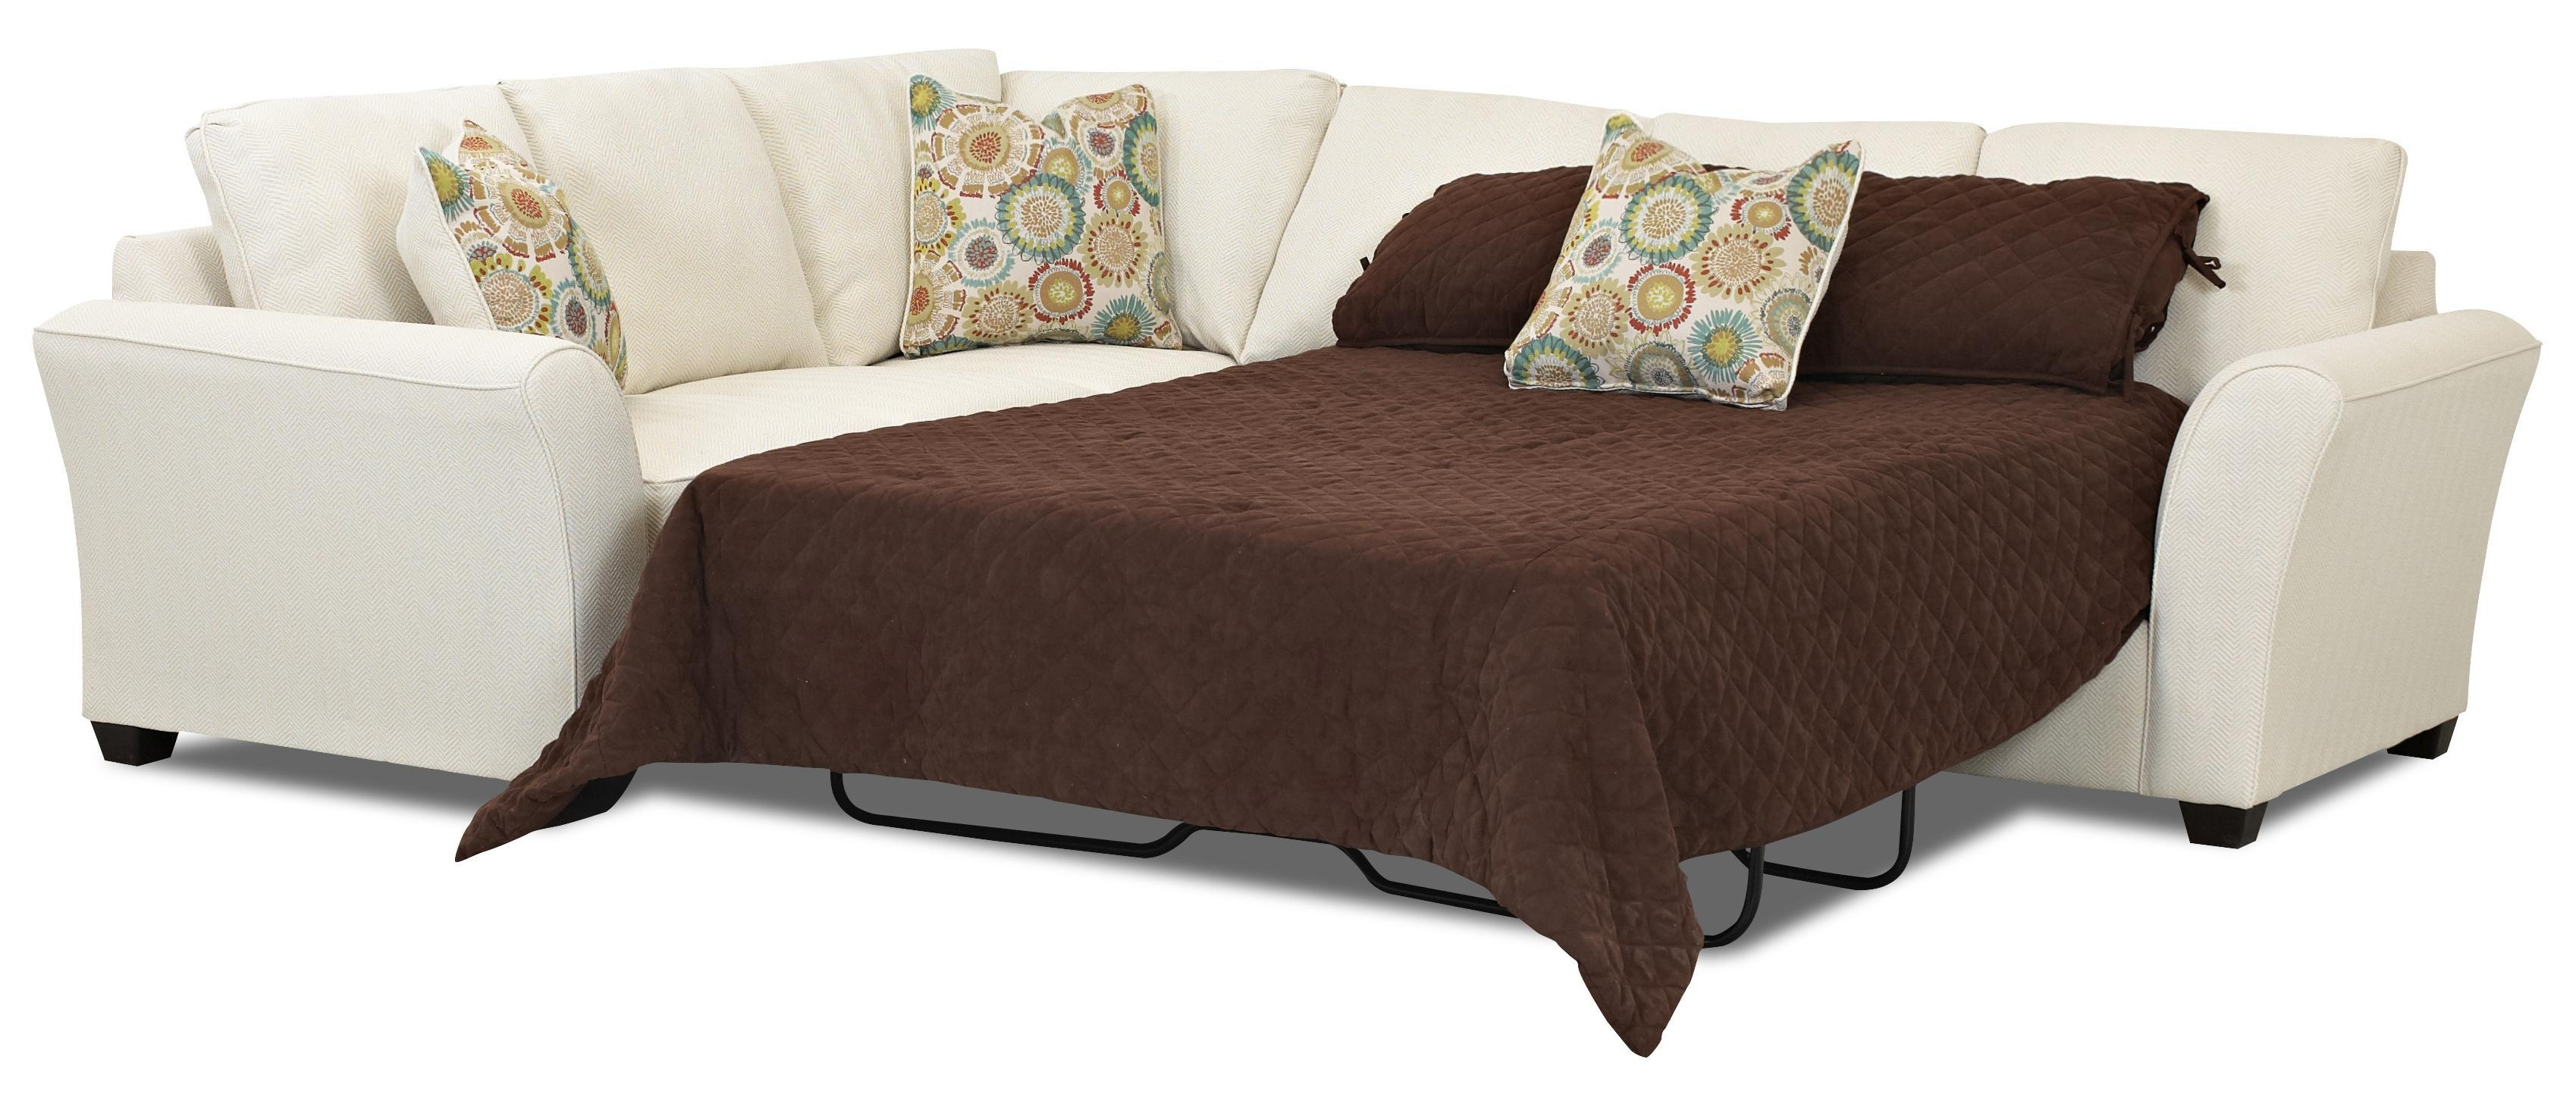 Transitional Sectional Sleeper Sofa With Dreamquest Mattress Pertaining To Sleeper Sofas (Image 18 of 20)